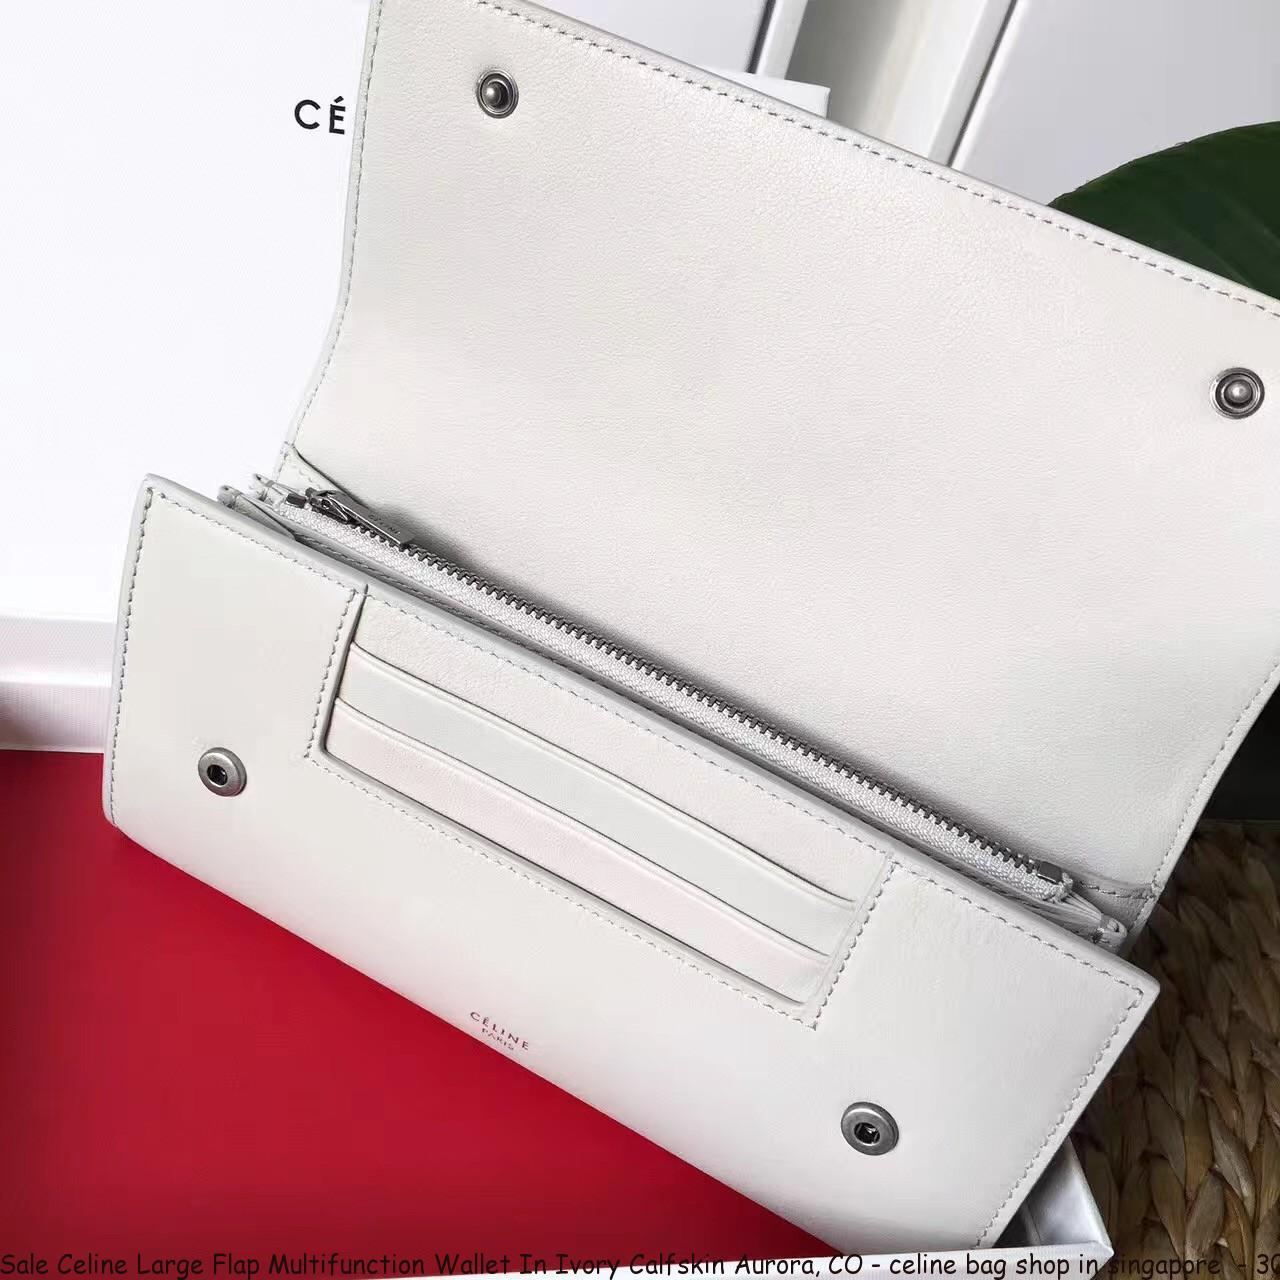 Sale Celine Large Flap Multifunction Wallet In Ivory Calfskin Aurora ... 11538c66c3b23